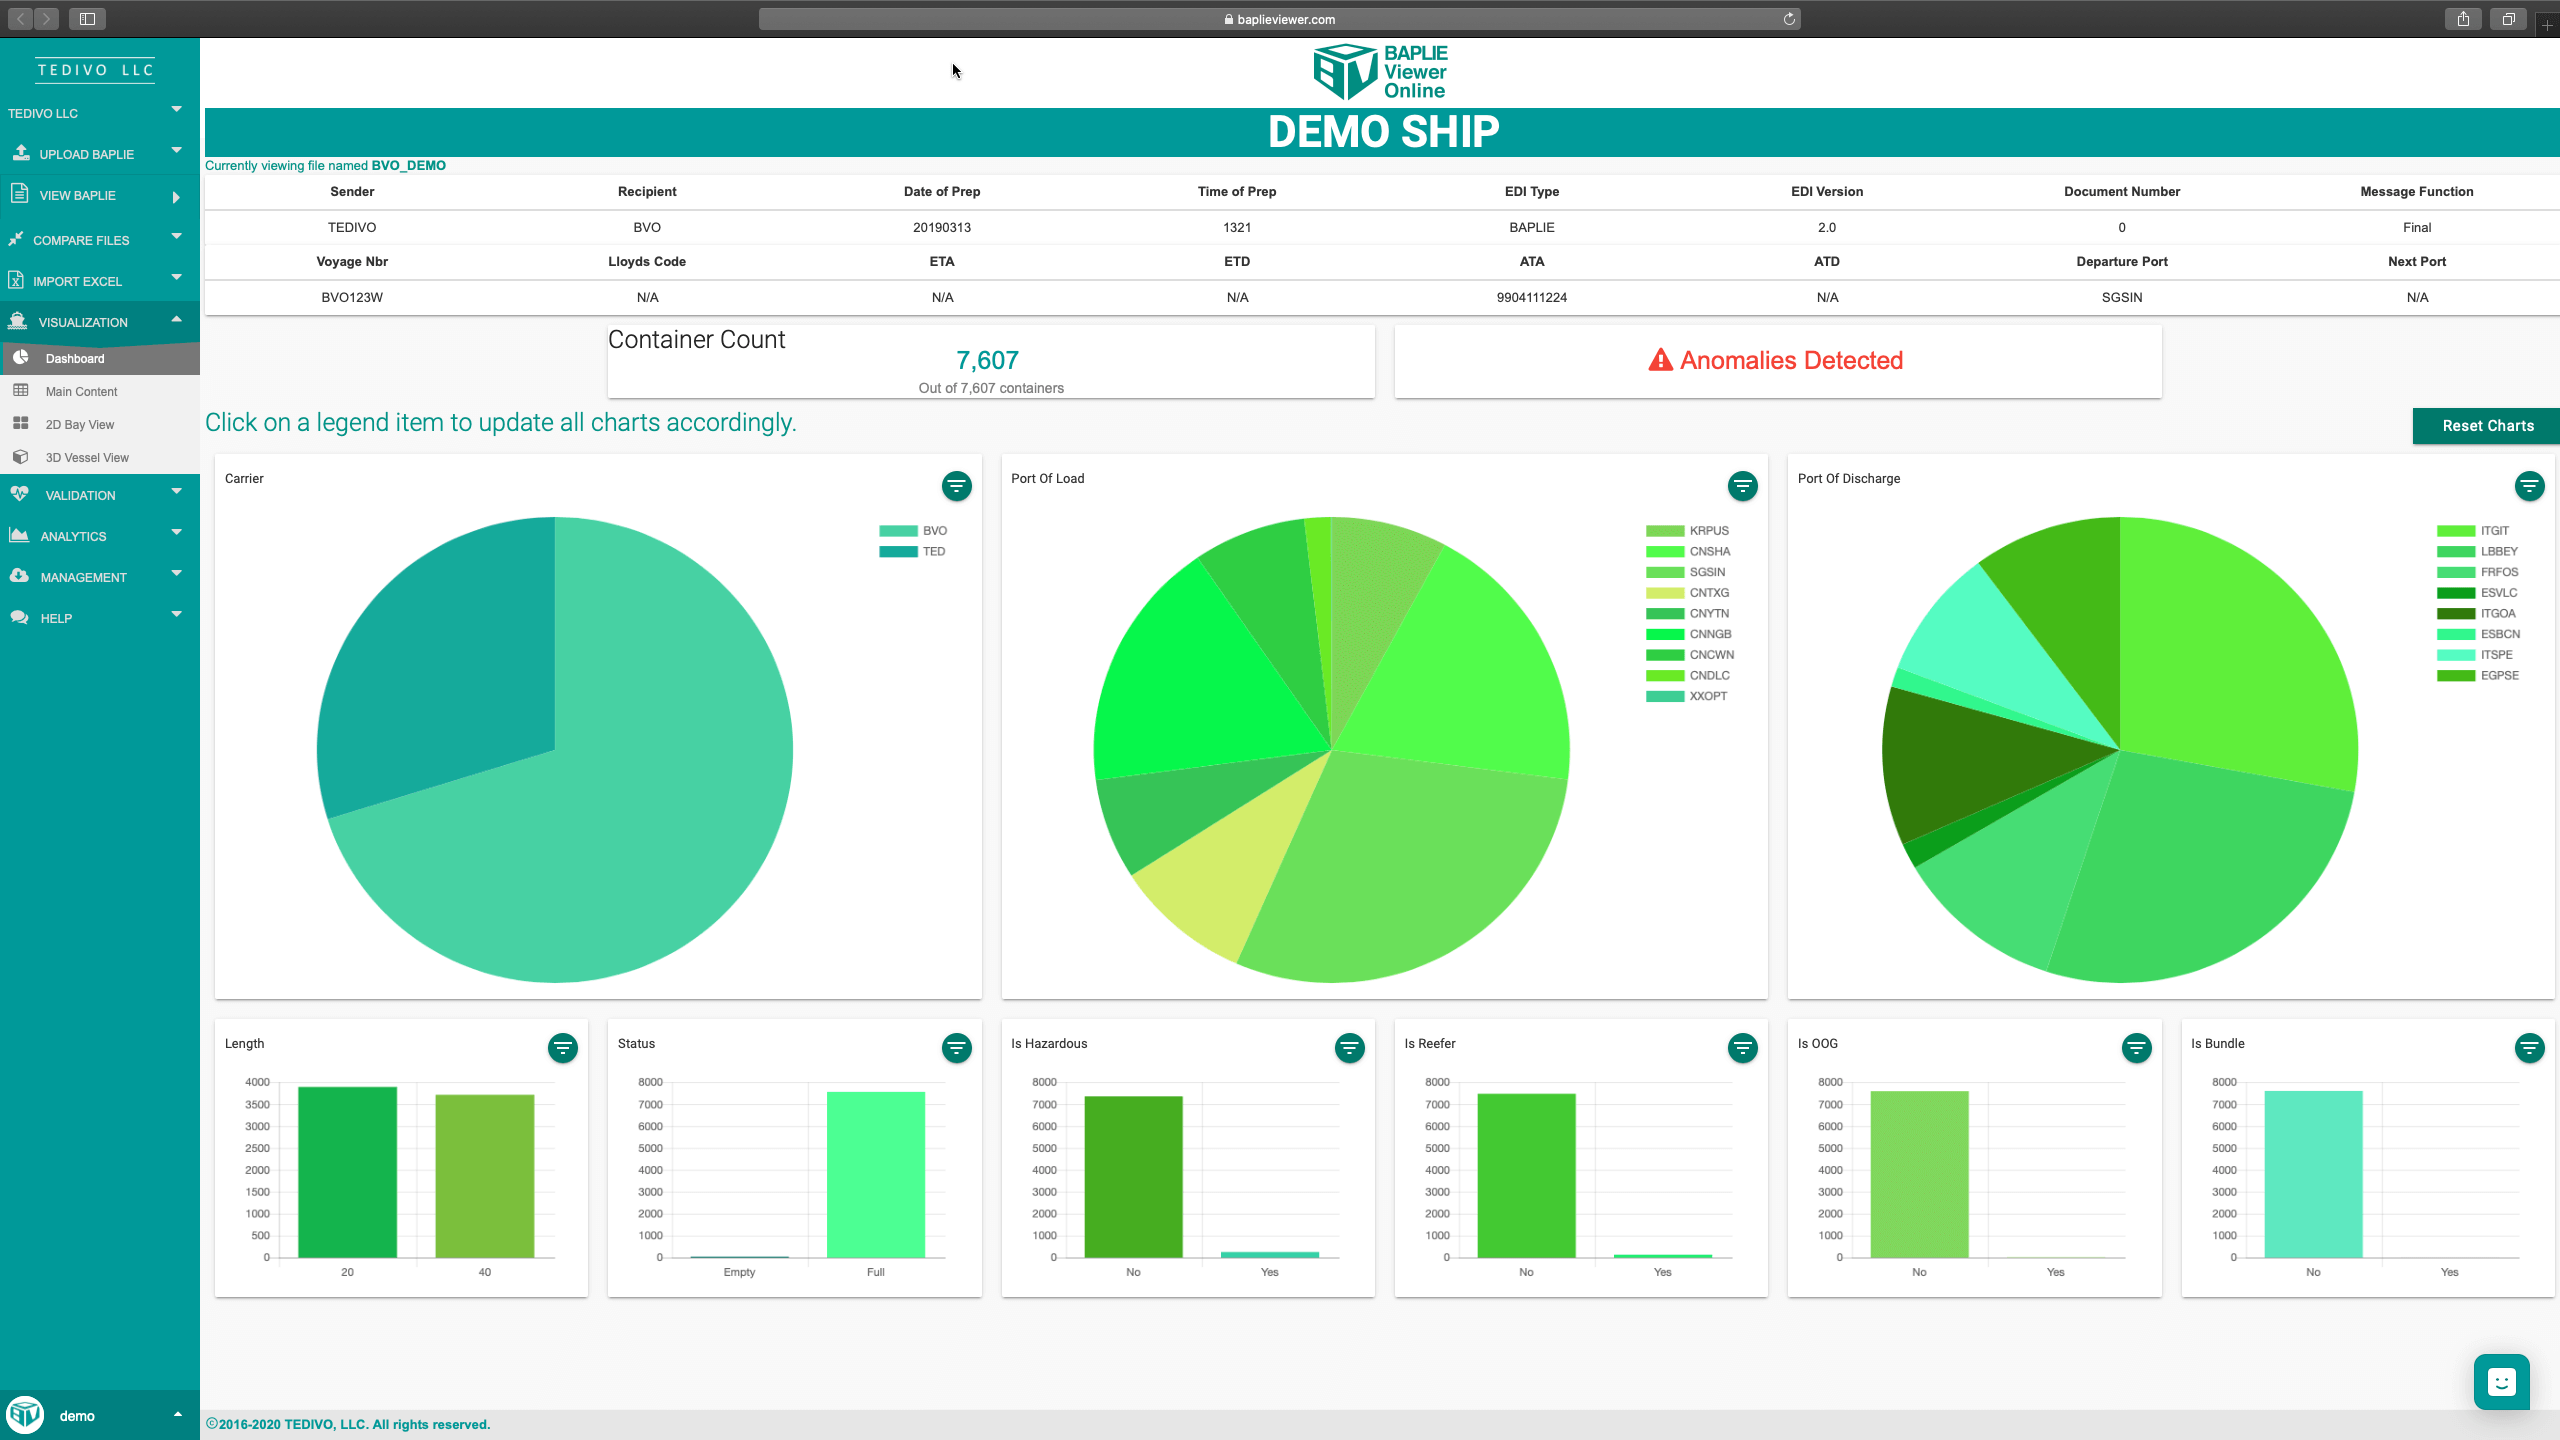 BAPLIE Viewer Dashboard